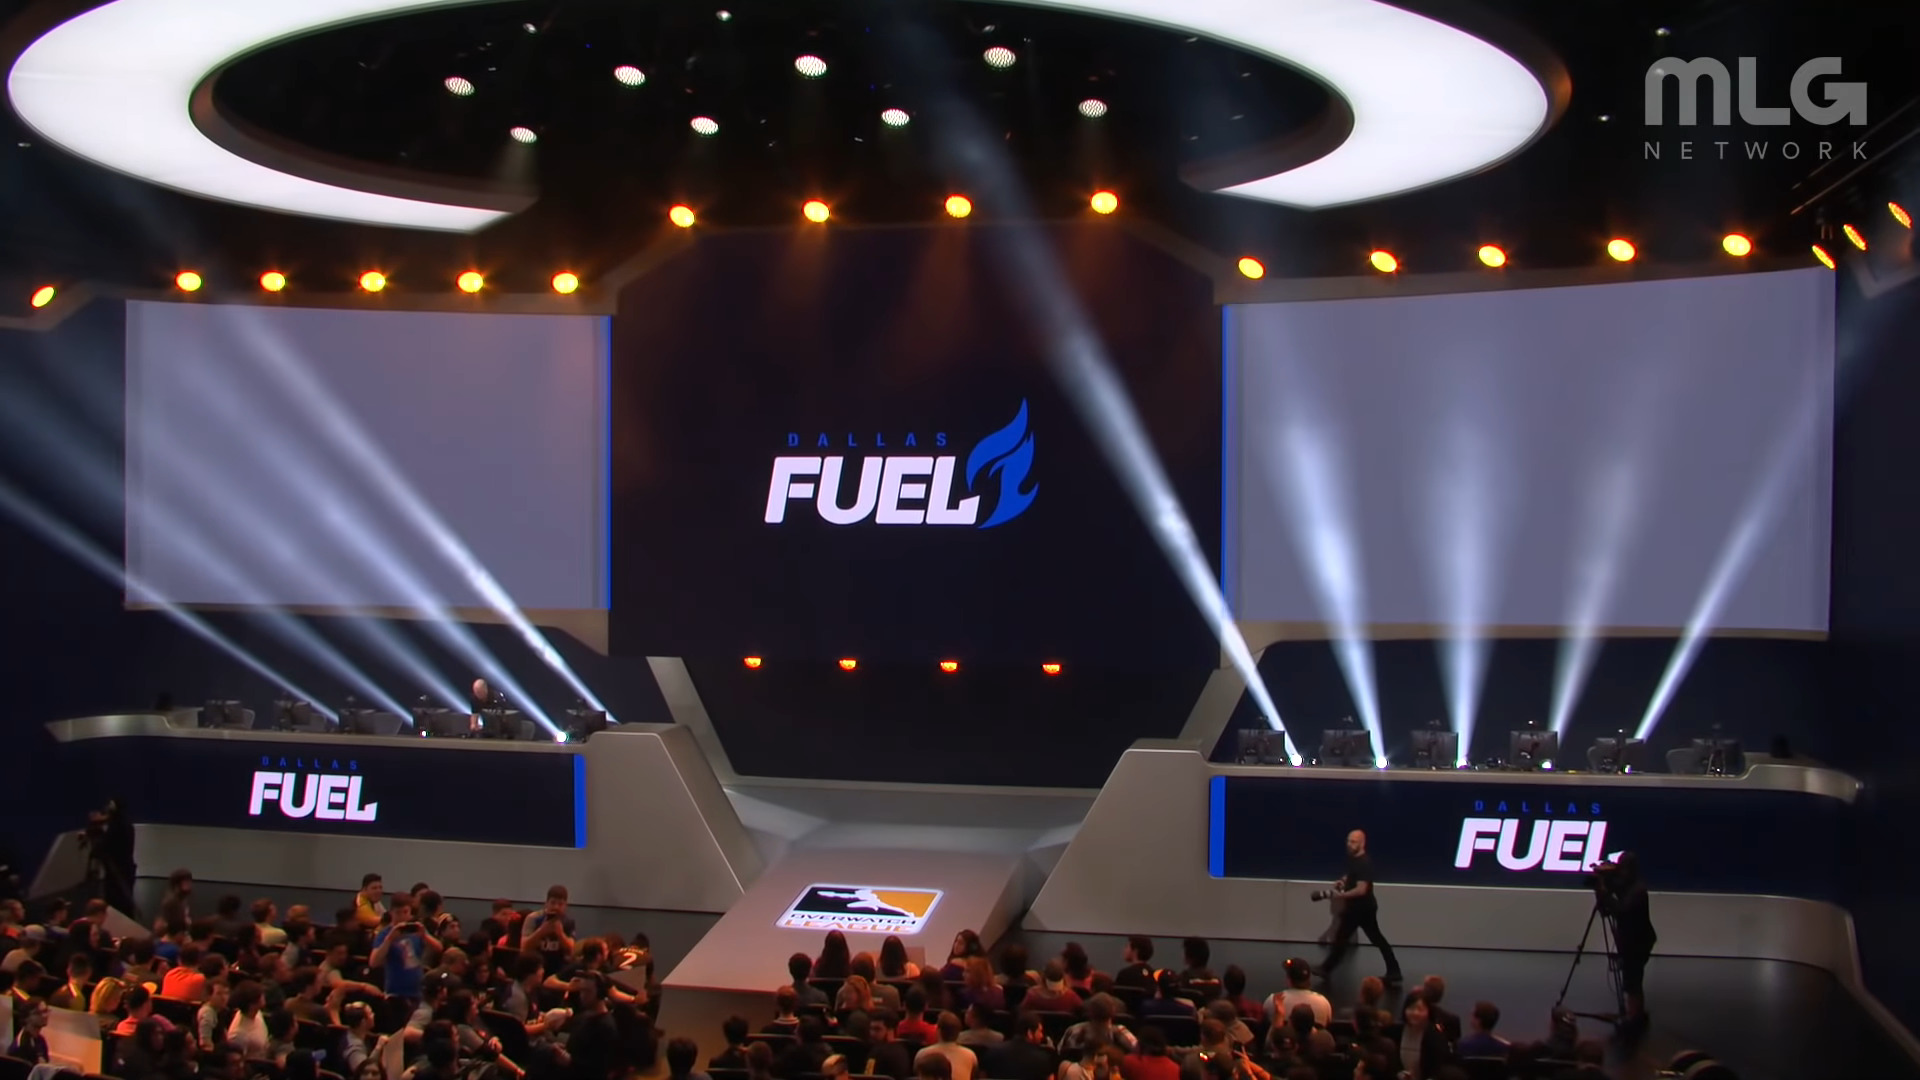 OWL – Dallas Fuel Releases Nine Players To Admit Roster Rebuilding, Keeps DPS Player Doha